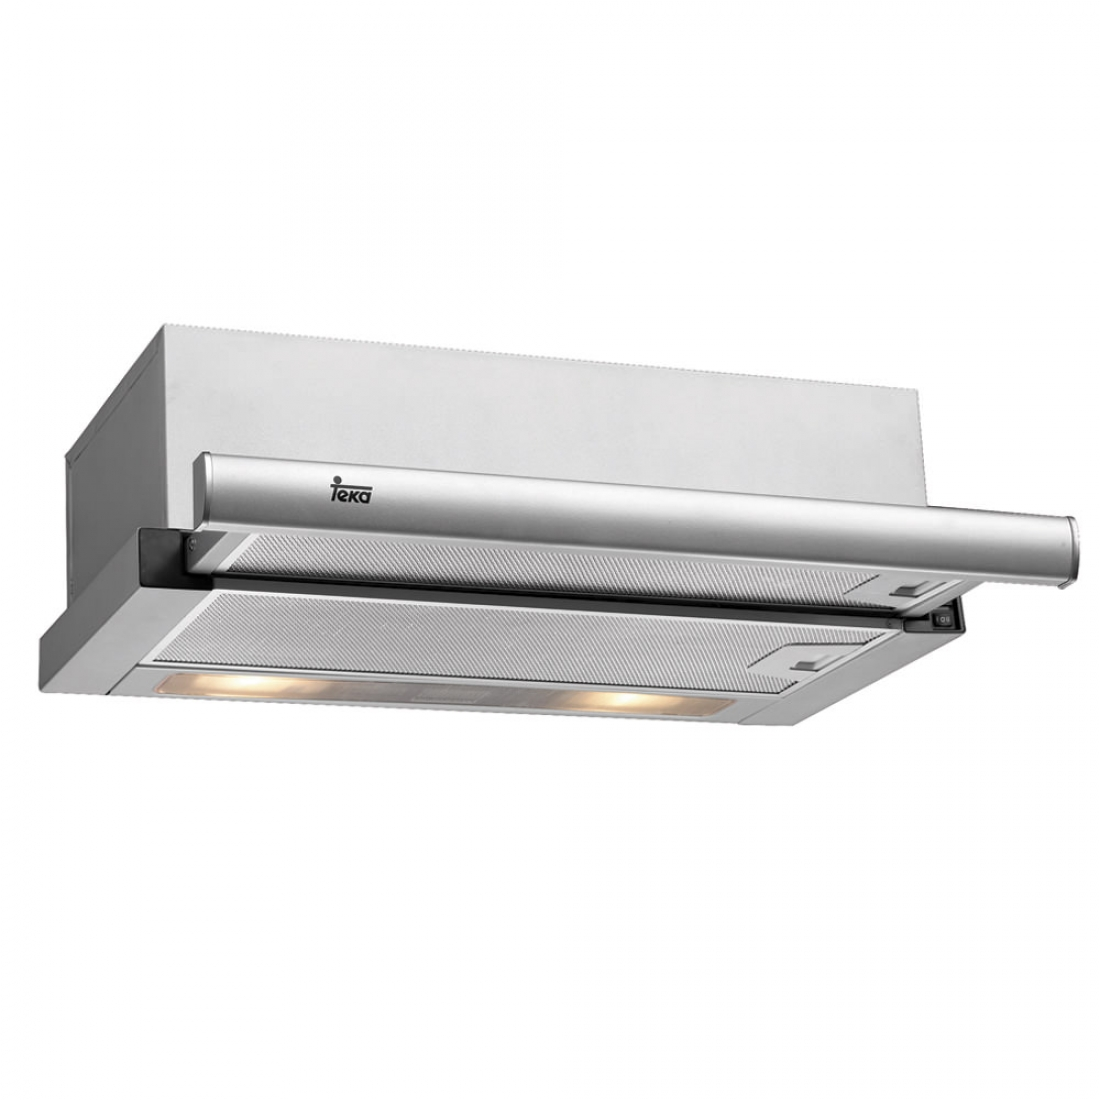 Вытяжка TEKA TL 6310 Stainless Steel